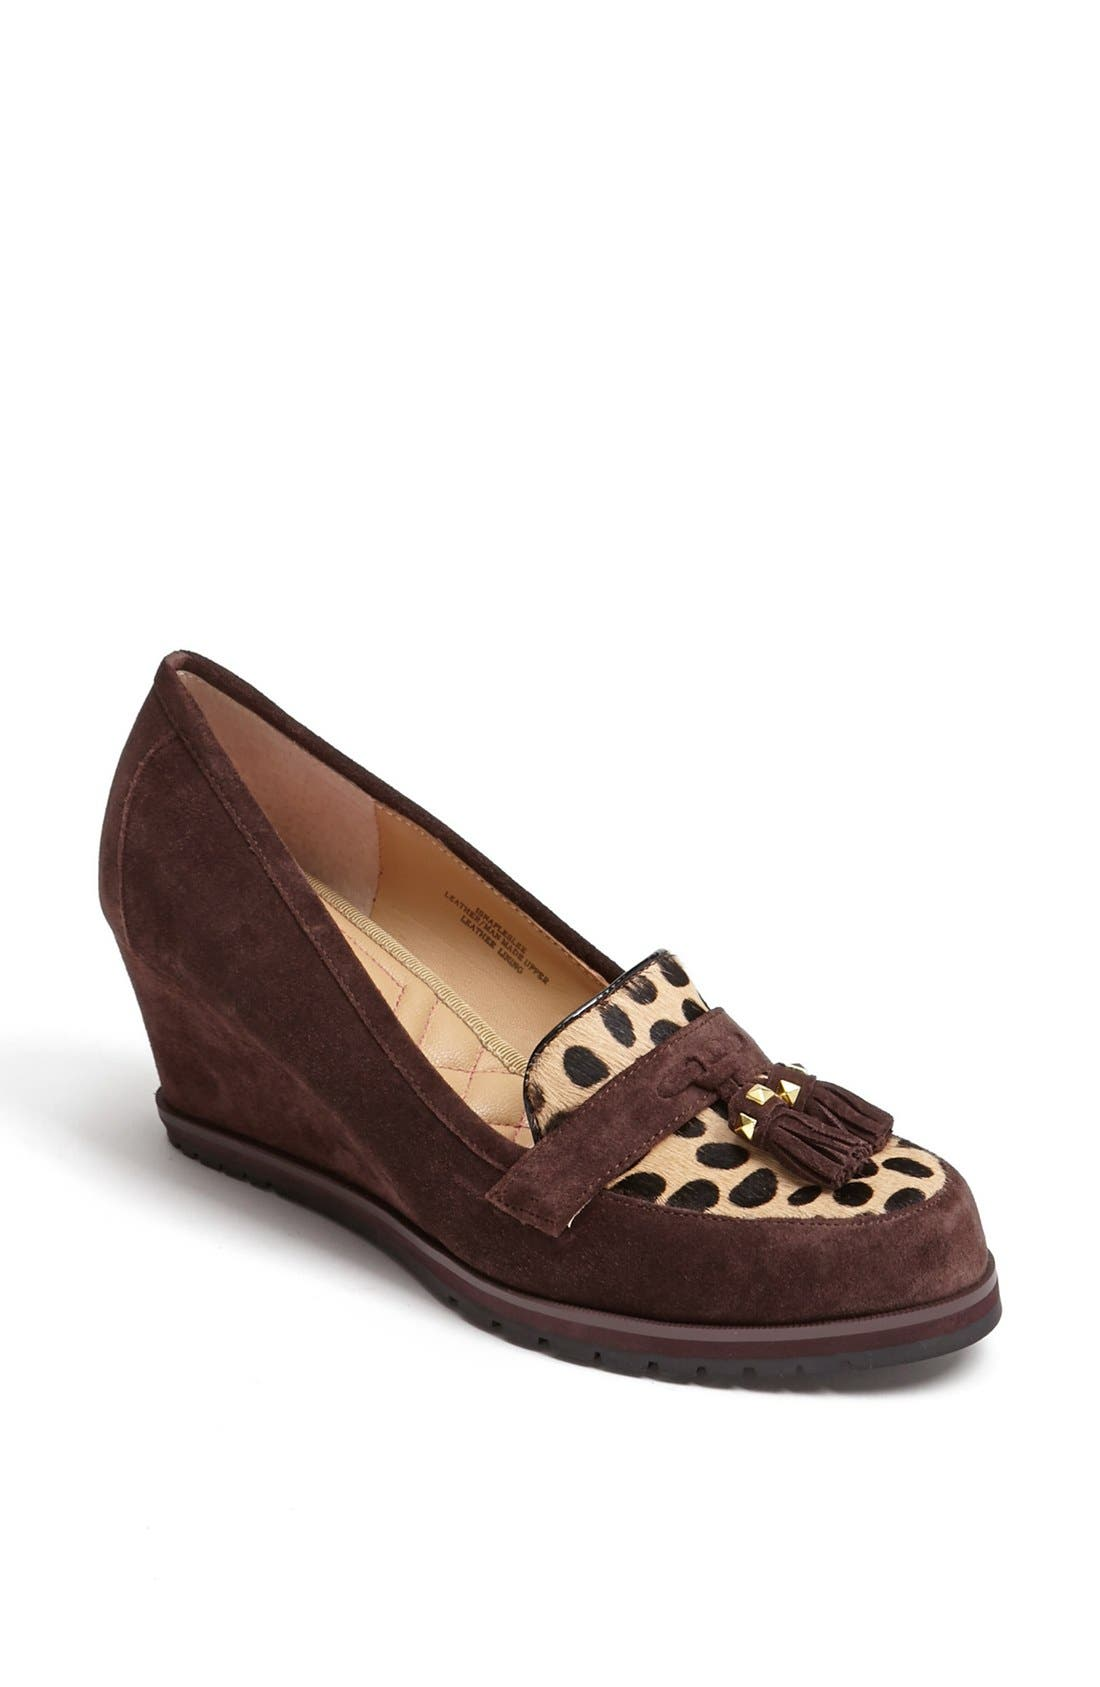 Alternate Image 1 Selected - Isaac Mizrahi New York 'Naples' Loafer Pump